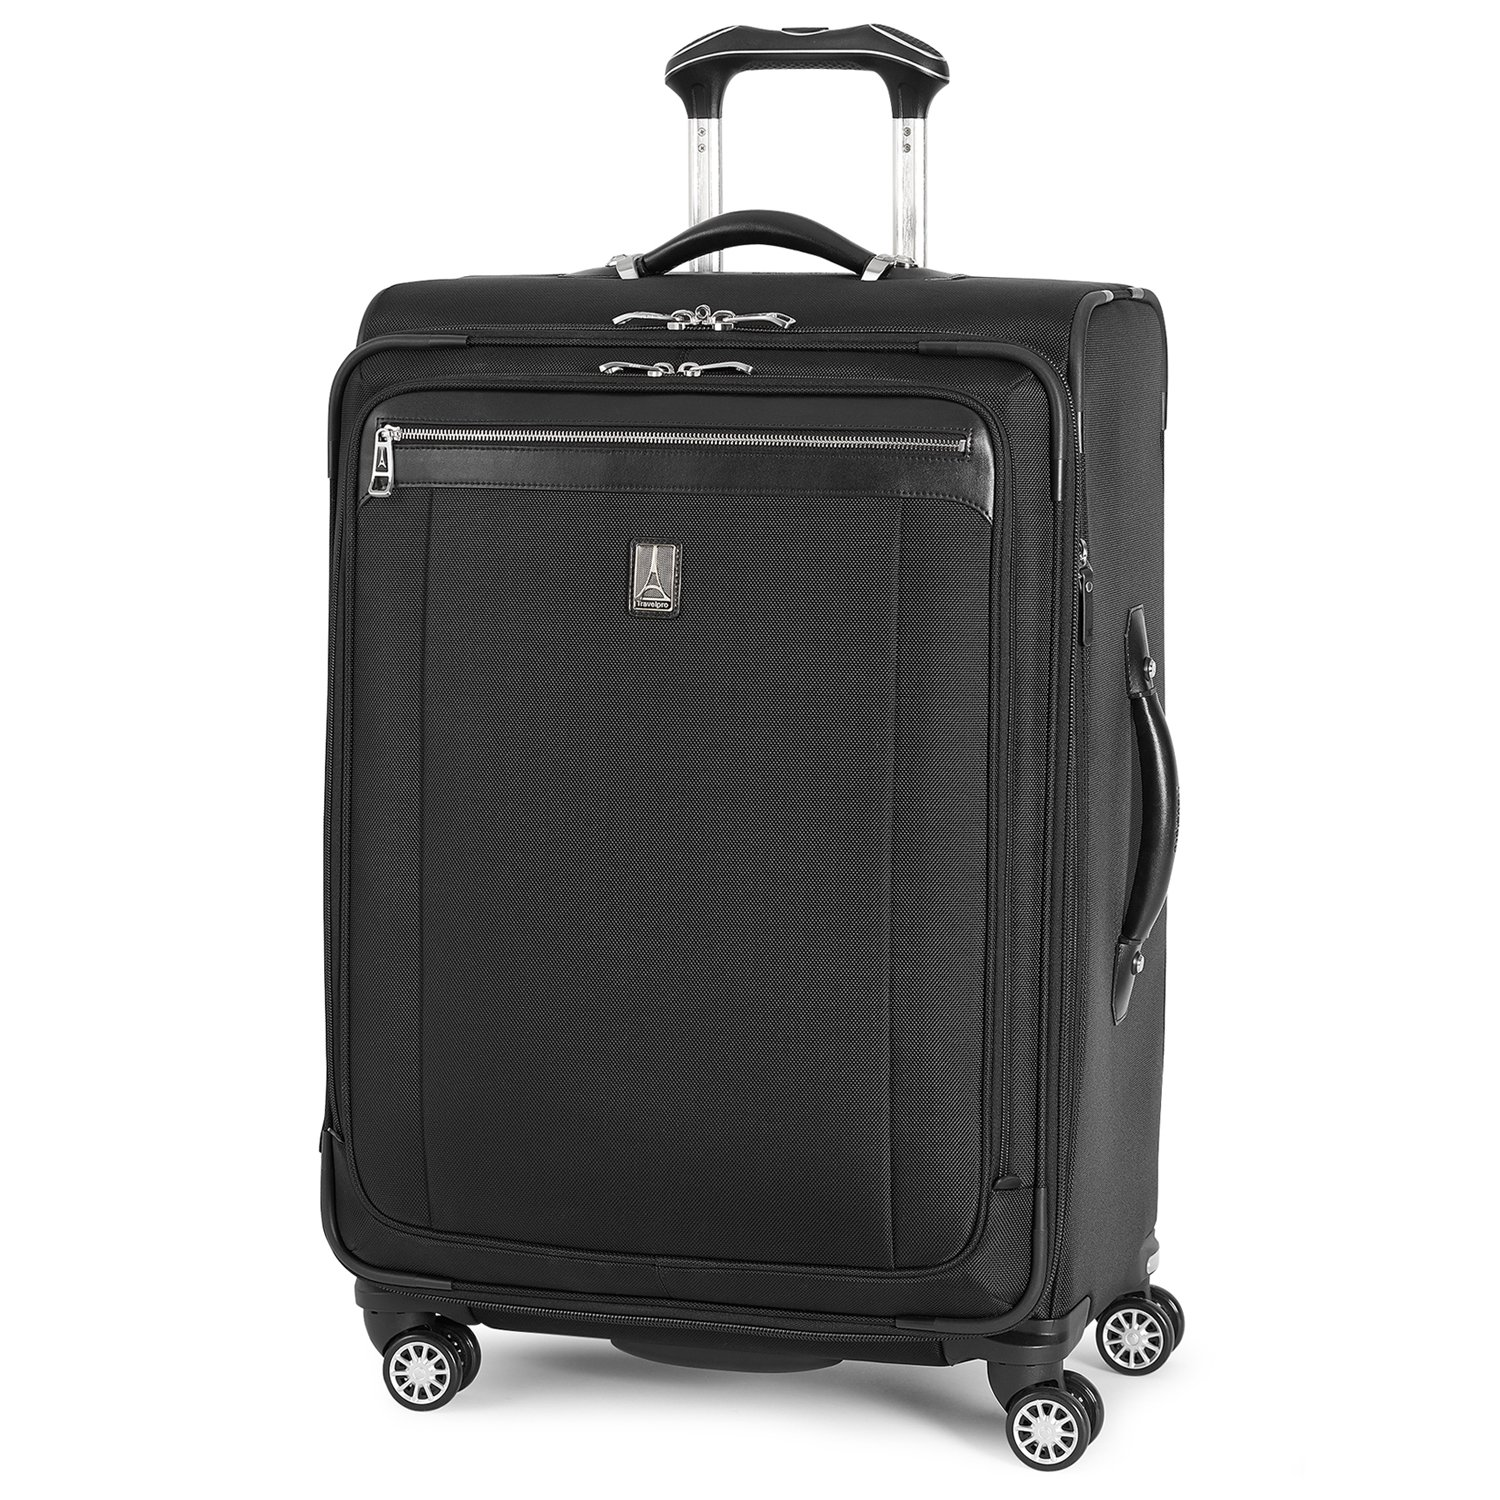 Travelpro Platinum Magna 2 Expandable Spinner Suiter Suitcase, 25-in., Black by Travelpro